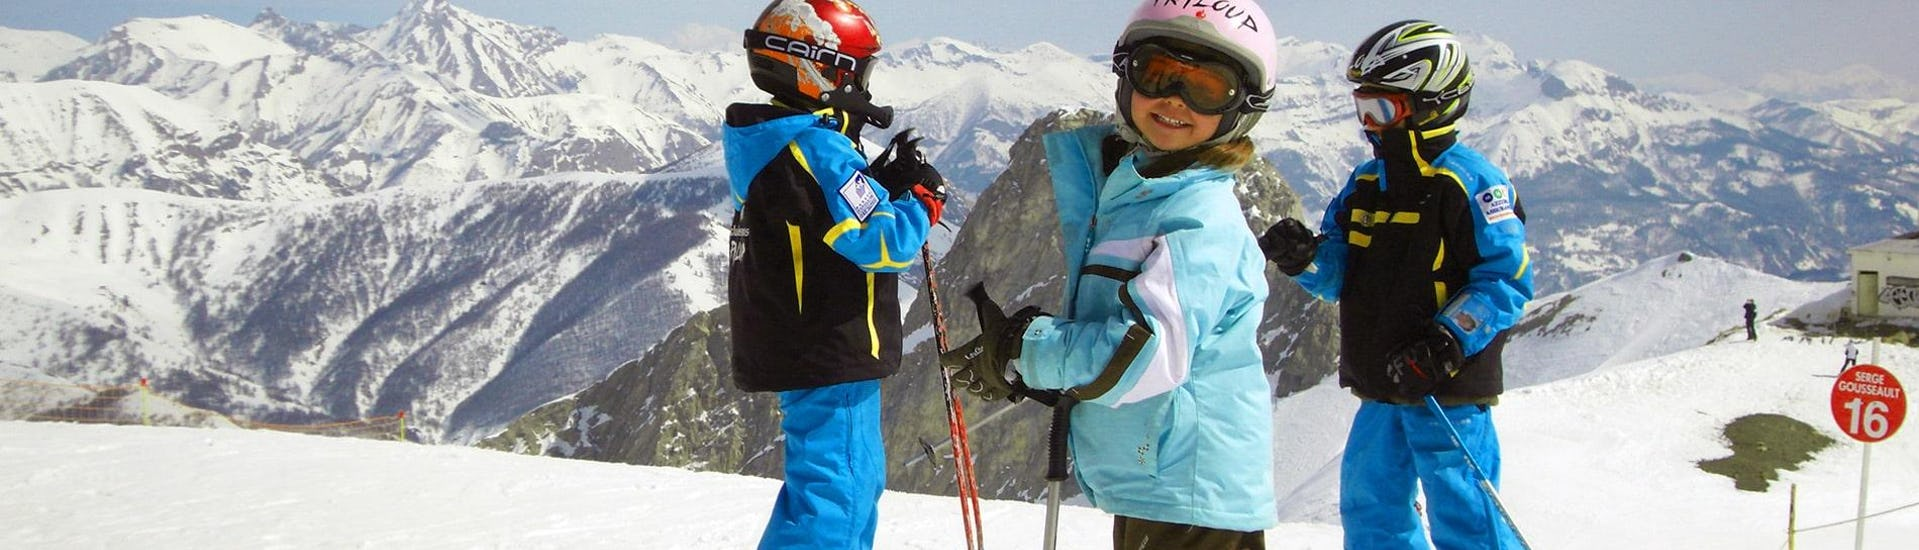 Ski Instructor Private Kids (5-12 y.) - Low Season